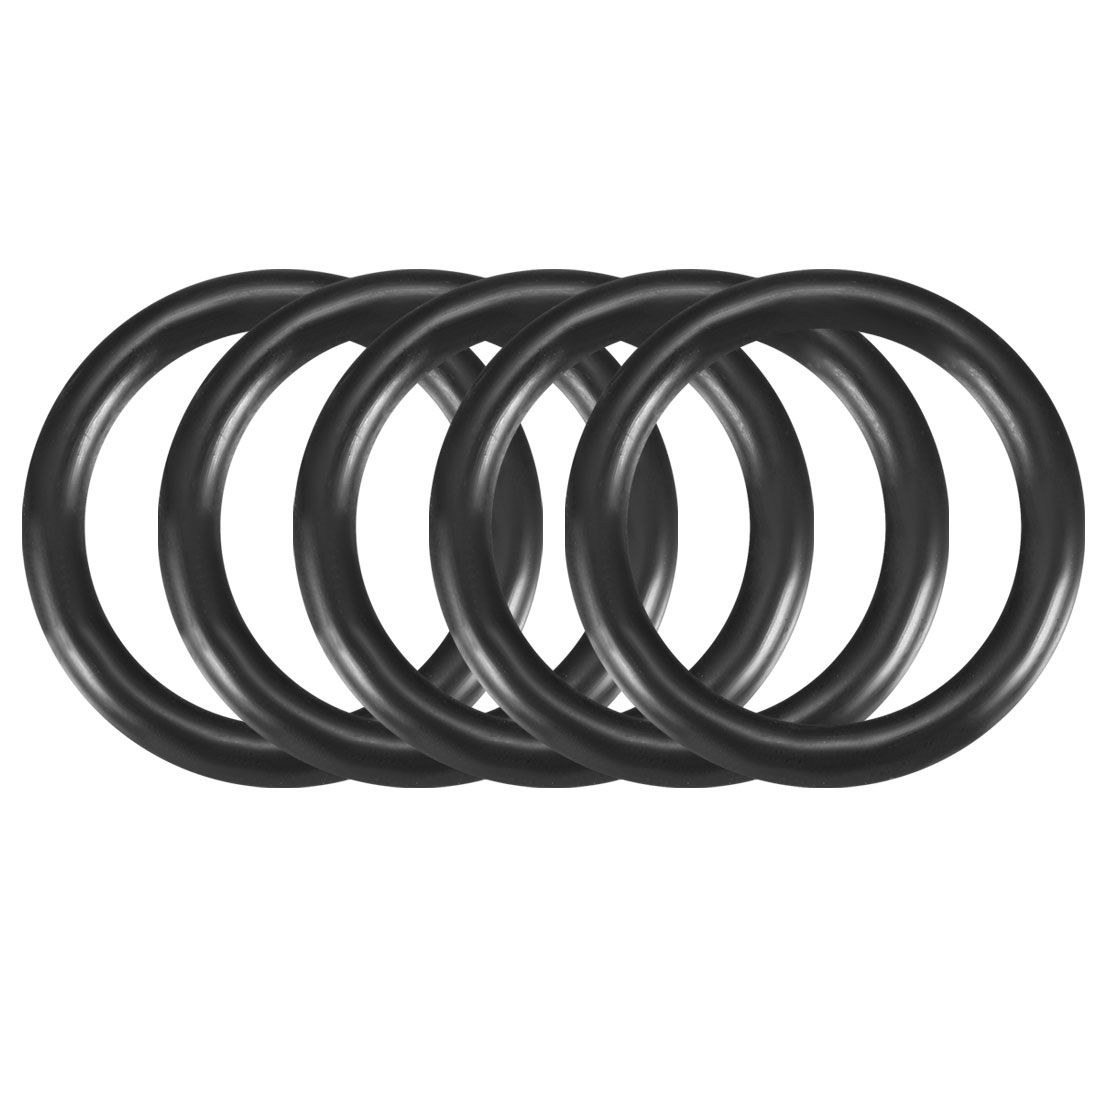 5 Pcs Mechanical Rubber Sealing Oil Filter O Rings Gaskets 35mm x 26mm x 4.6mm